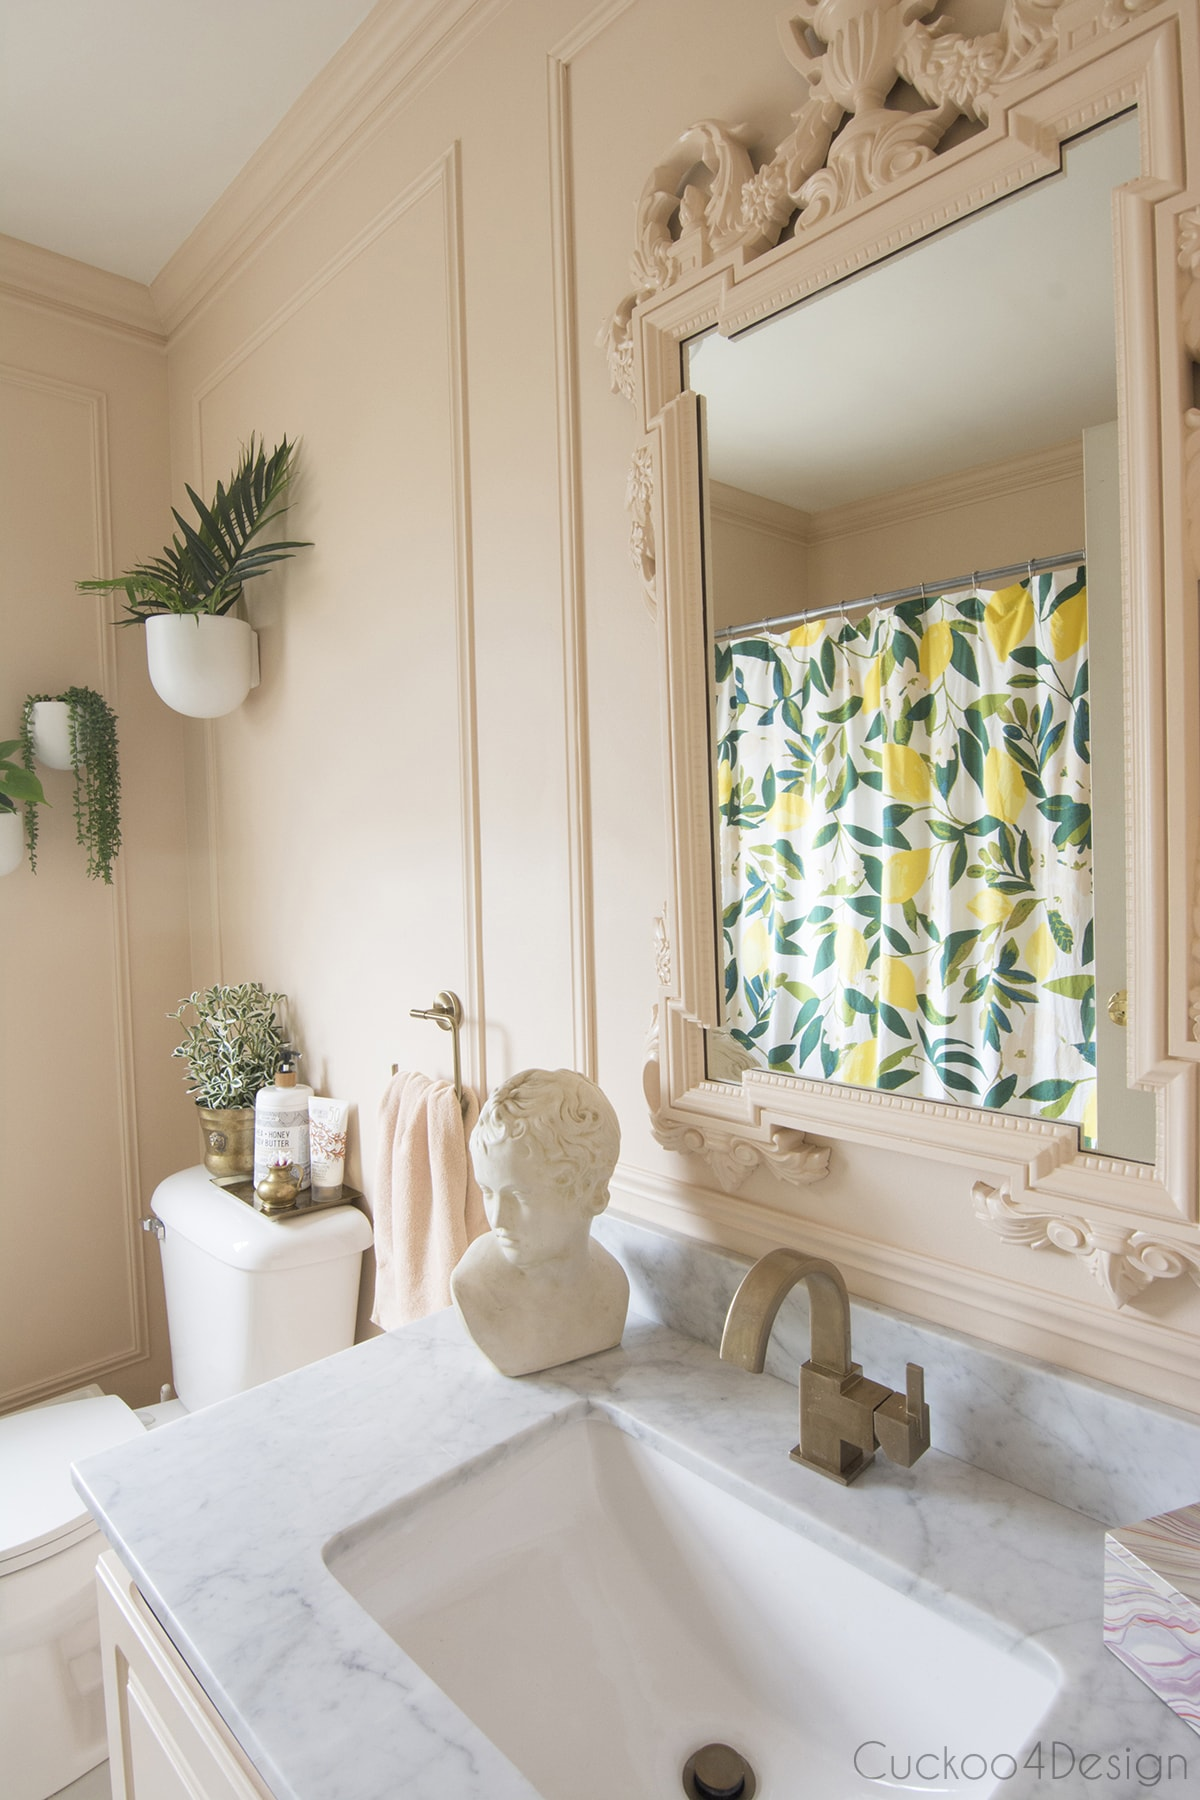 shower curtains with lemons in blush budget bathroom remodel